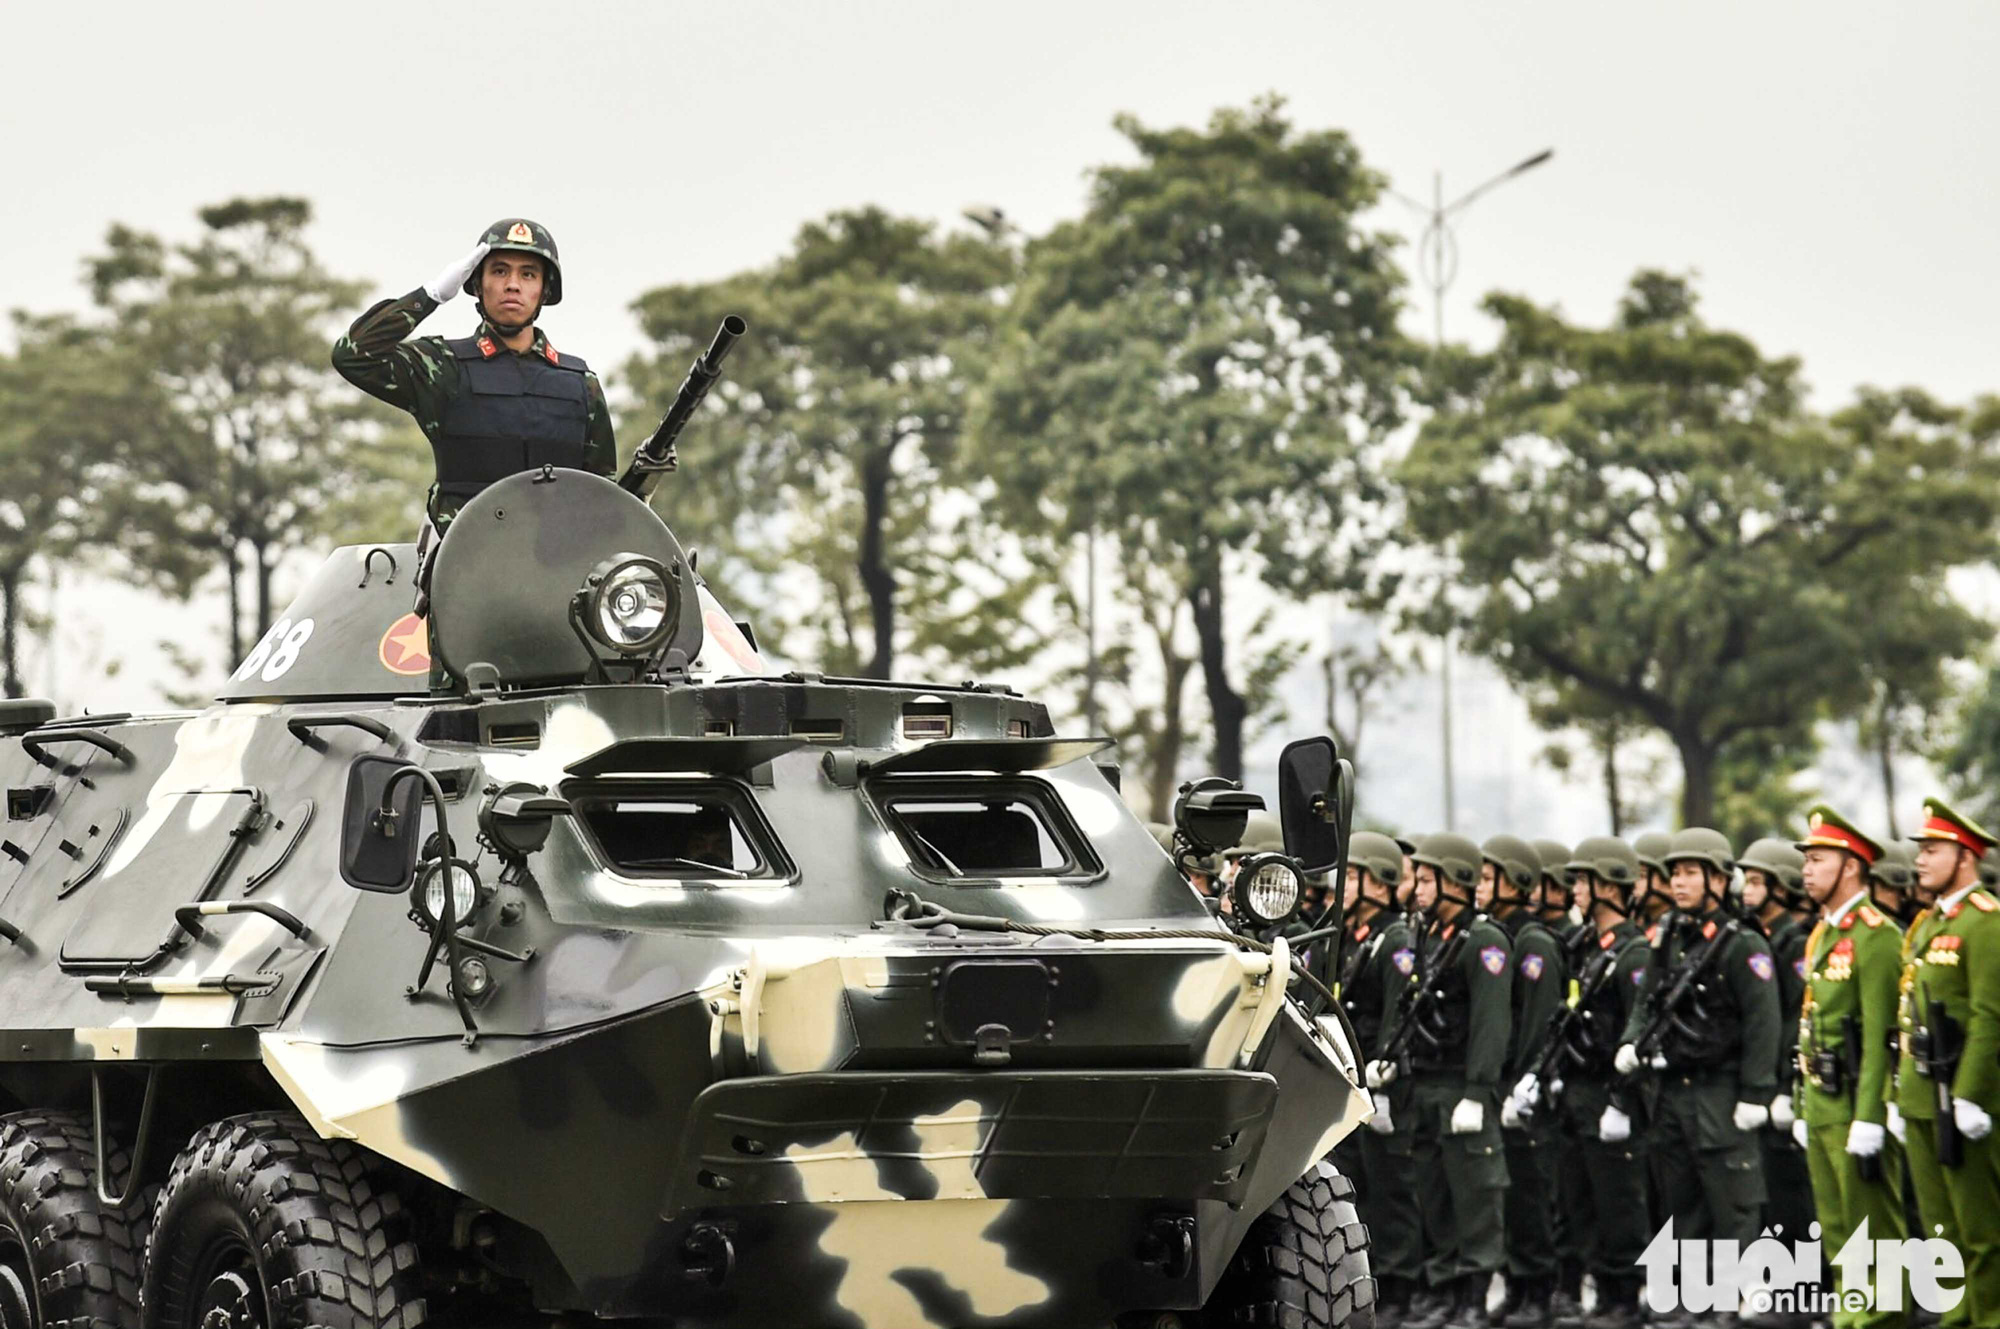 An armored vehicle is pictured during the parade in Hanoi, January 10, 2021. Photo: Quang Minh / Tuoi Tre